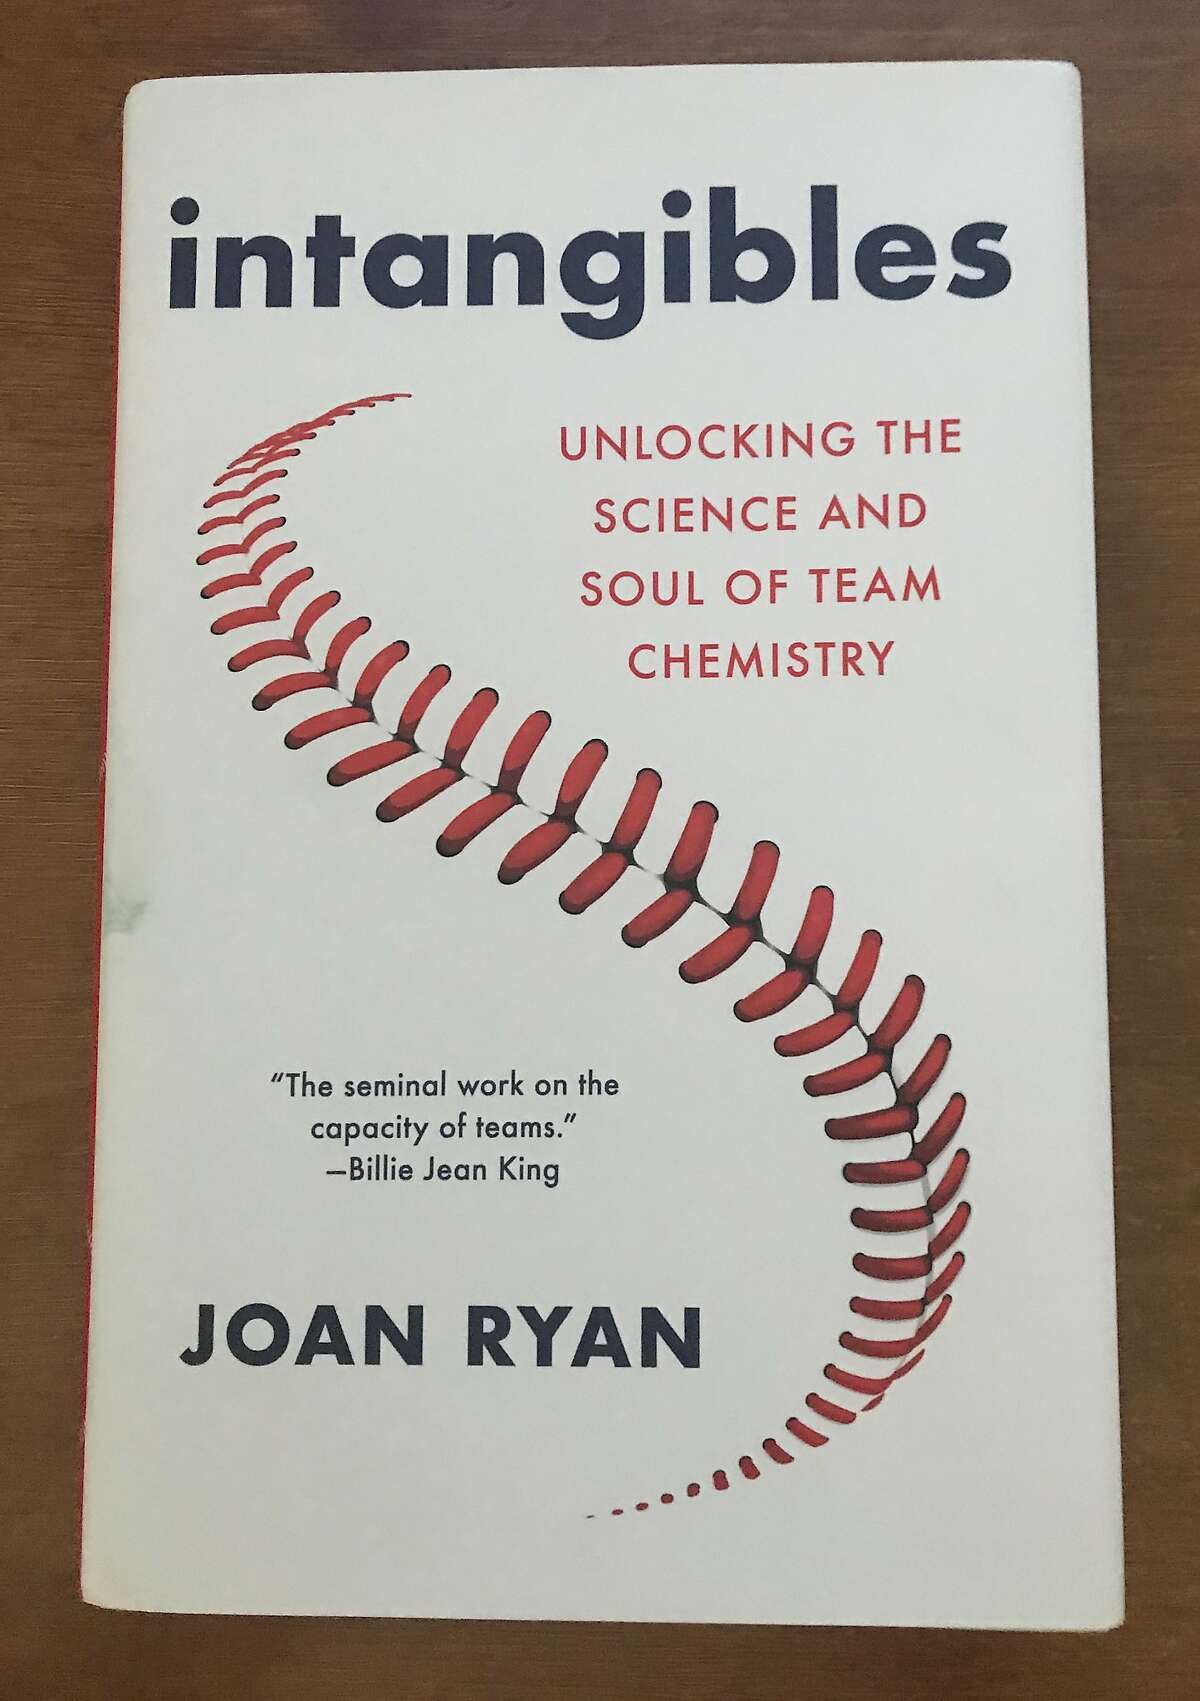 Joan Ryan, a former columnist for the San Francisco Chronicle who now works as a media consultant for the Giants, first considered a book on team chemistry when she attended the 20-year reunion of the 1989 Giants team that made it to the World Series.